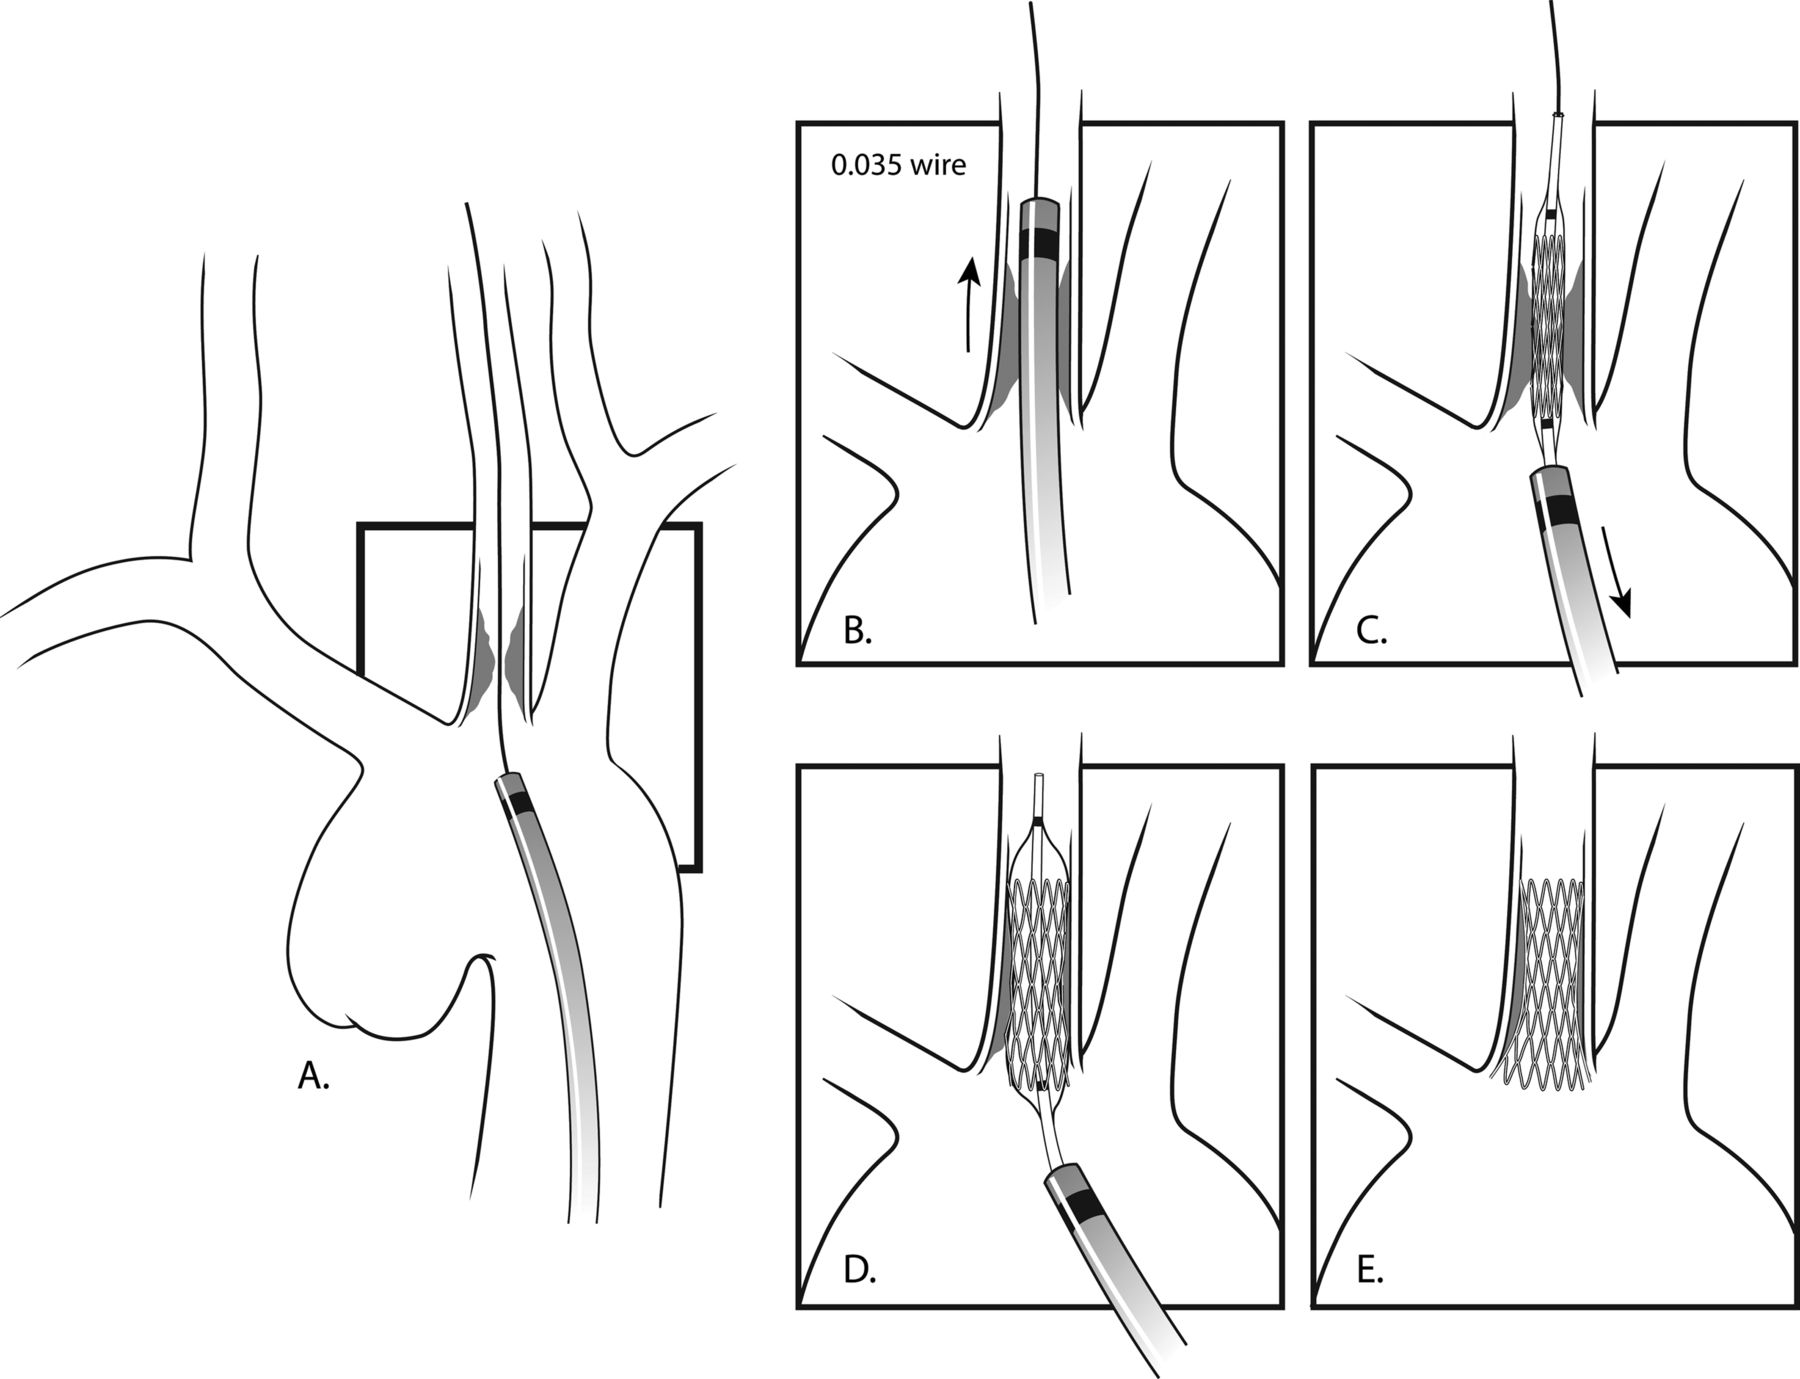 Transfemoral endovascular treatment of atherosclerotic stenotic ...